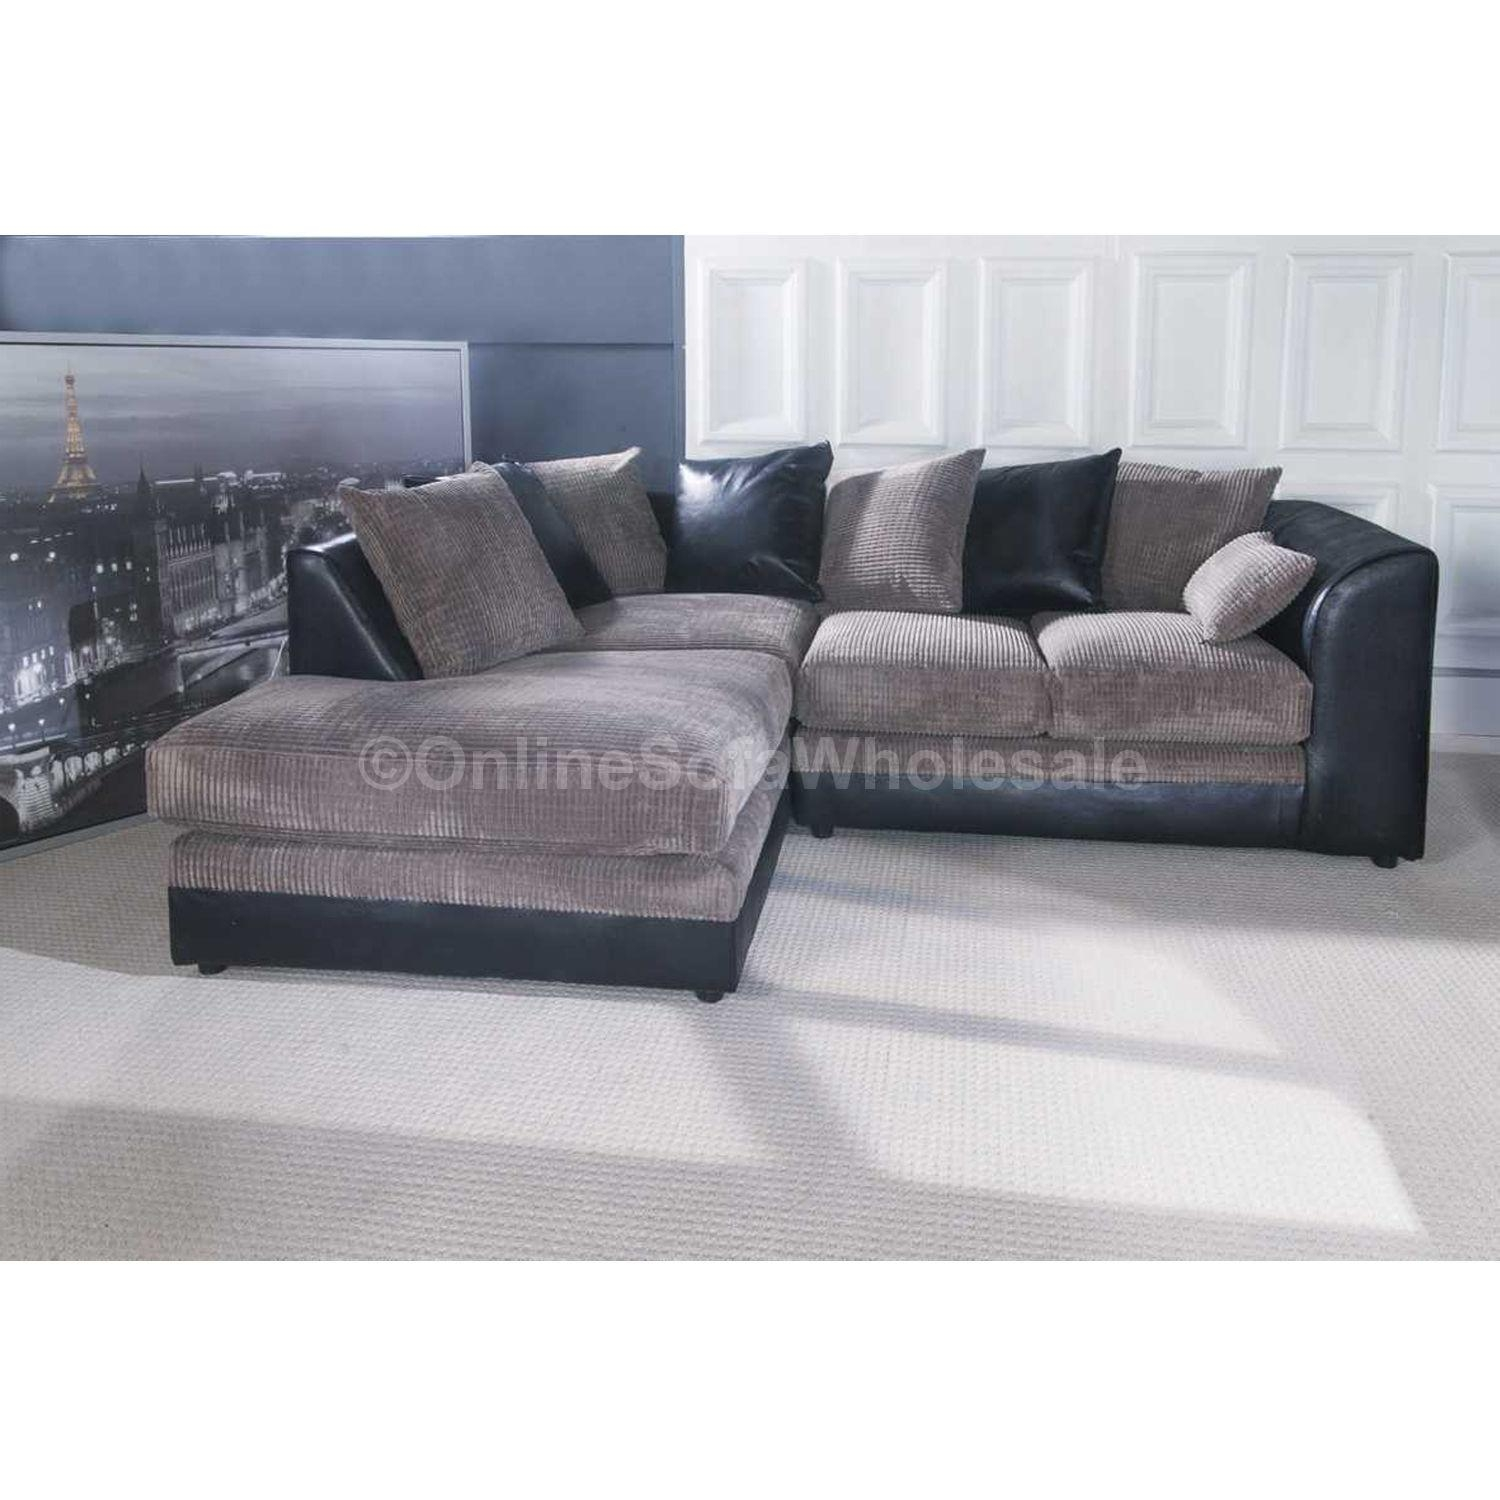 Leather Corner Sofa Ebay | Tehranmix Decoration Within Black Leather Corner Sofas (View 16 of 20)